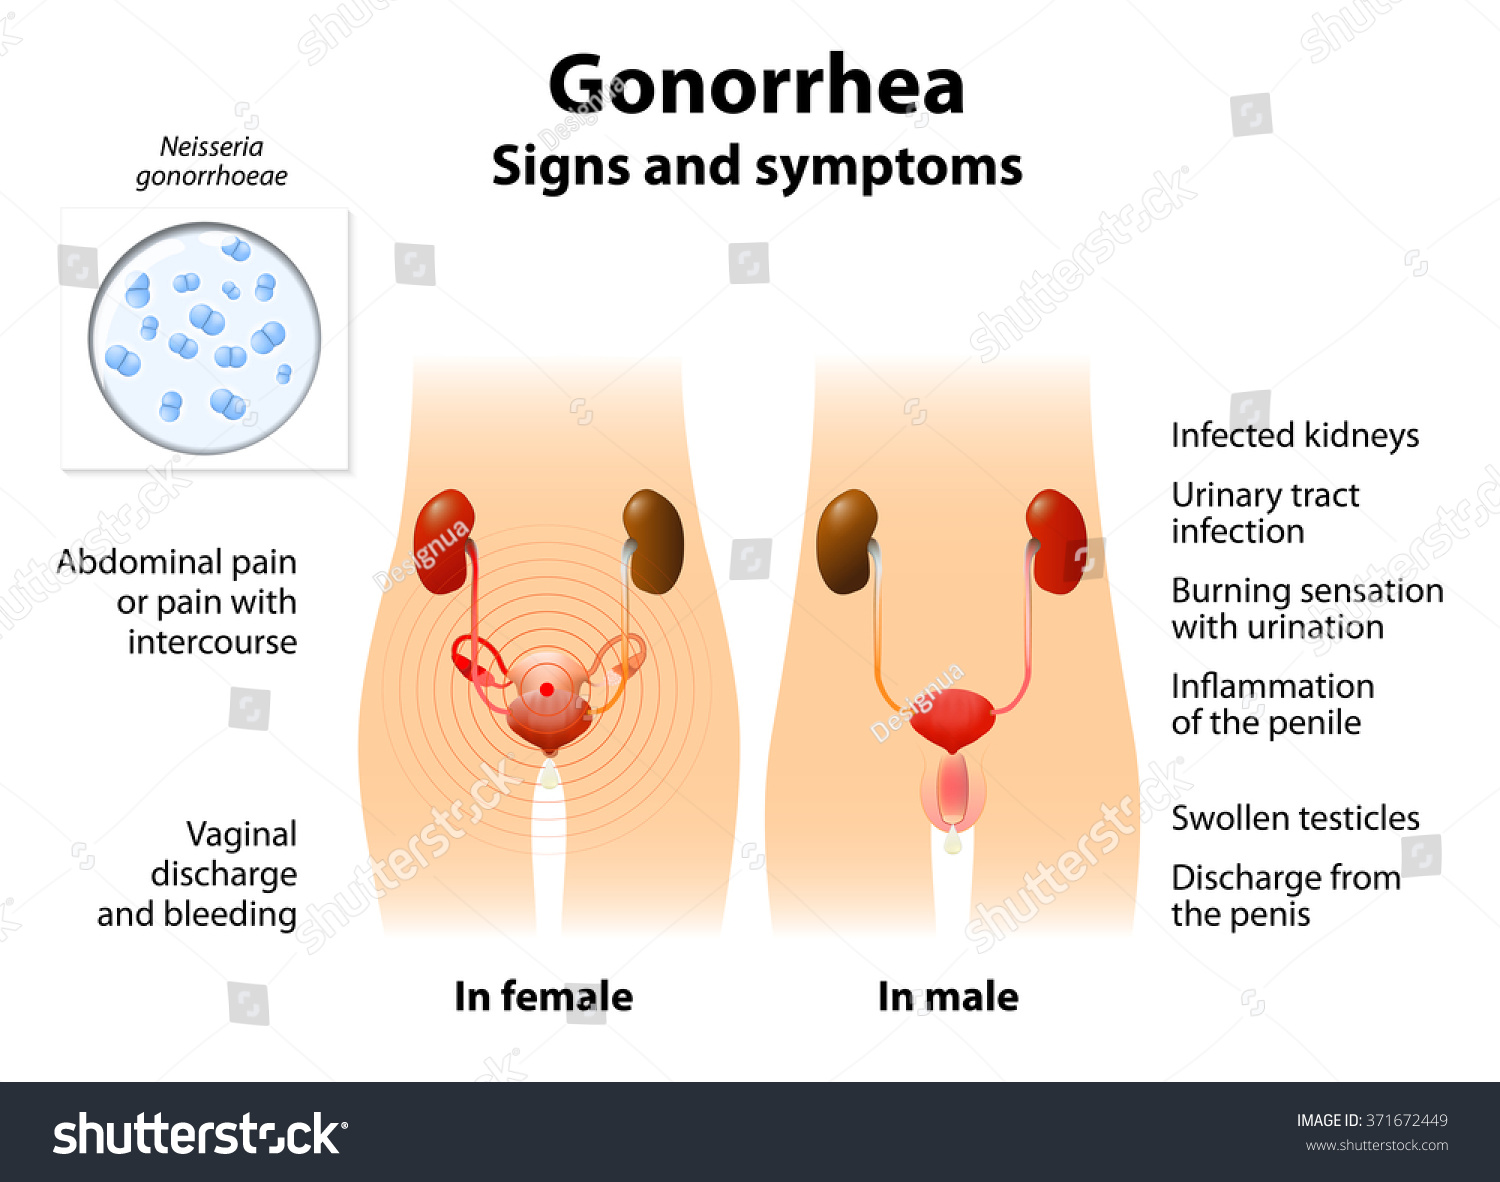 http://image.shutterstock.com/z/stock-vector-gonorrhea-or-gonococcal-urethritis-sexually-transmitted-infection-that-is-caused-by-the-bacterium-371672449.jpg